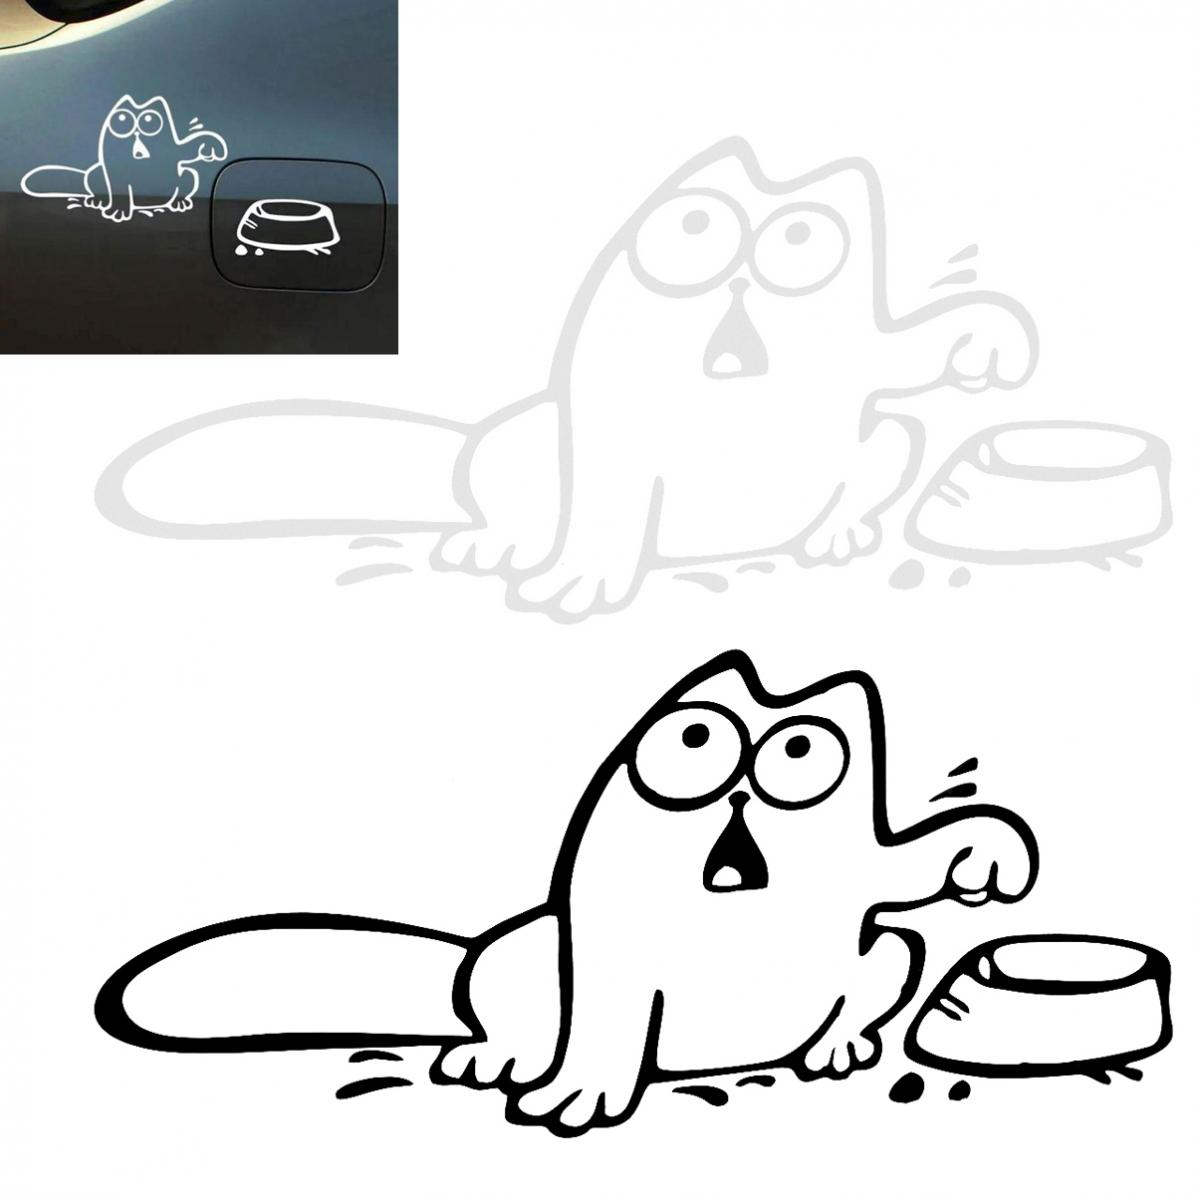 Waterproof 16 x 10CM Reflective Material Cat Pattern Creative Funny Car Sticker Accessories for Cars Fuel Tank